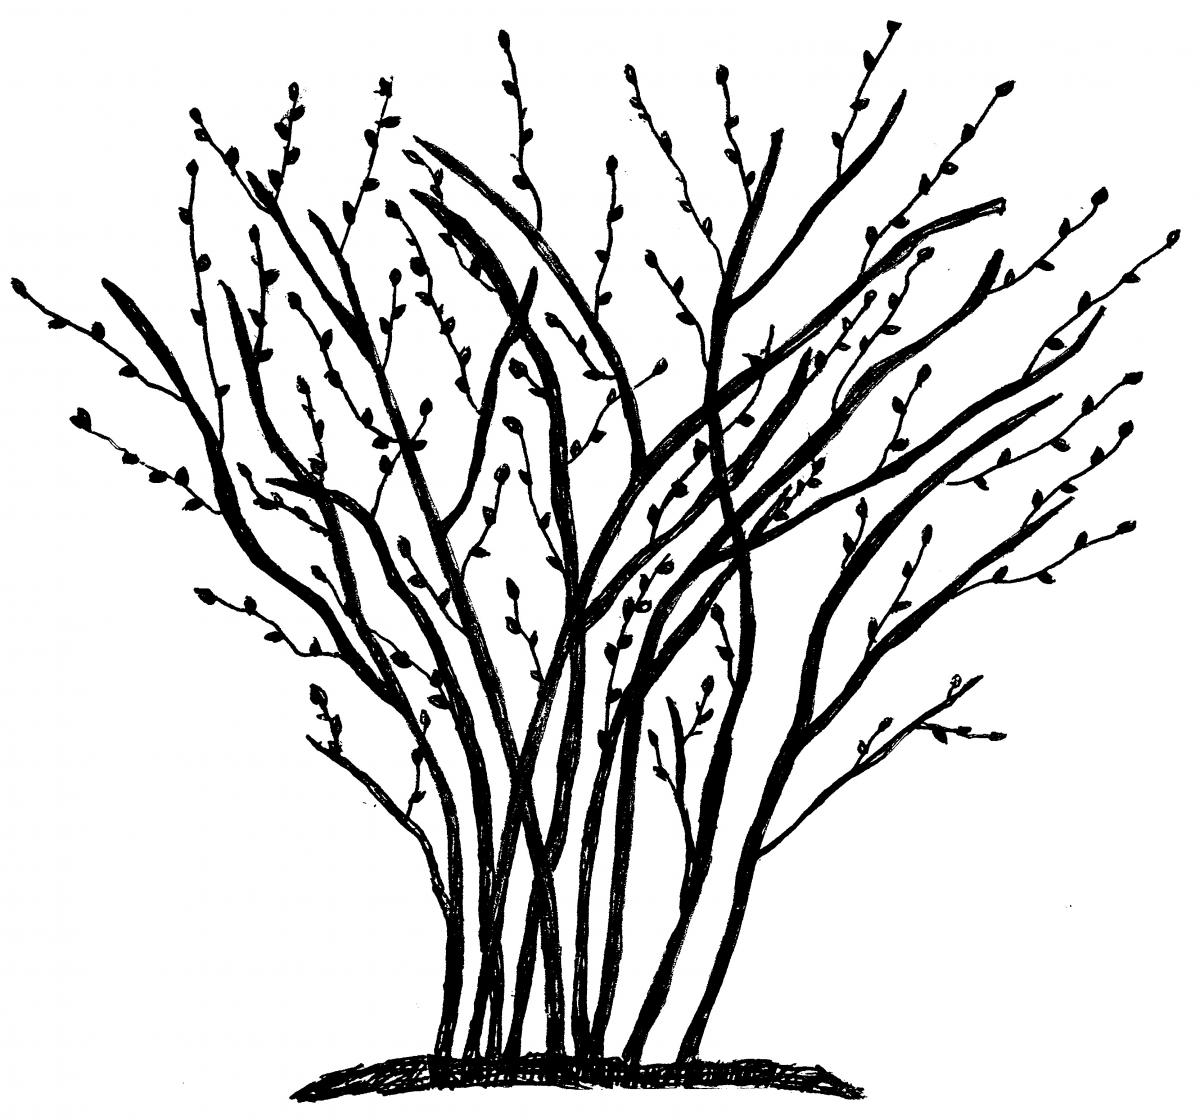 Blueberries clipart blueberry bush. Pruning bushes in the